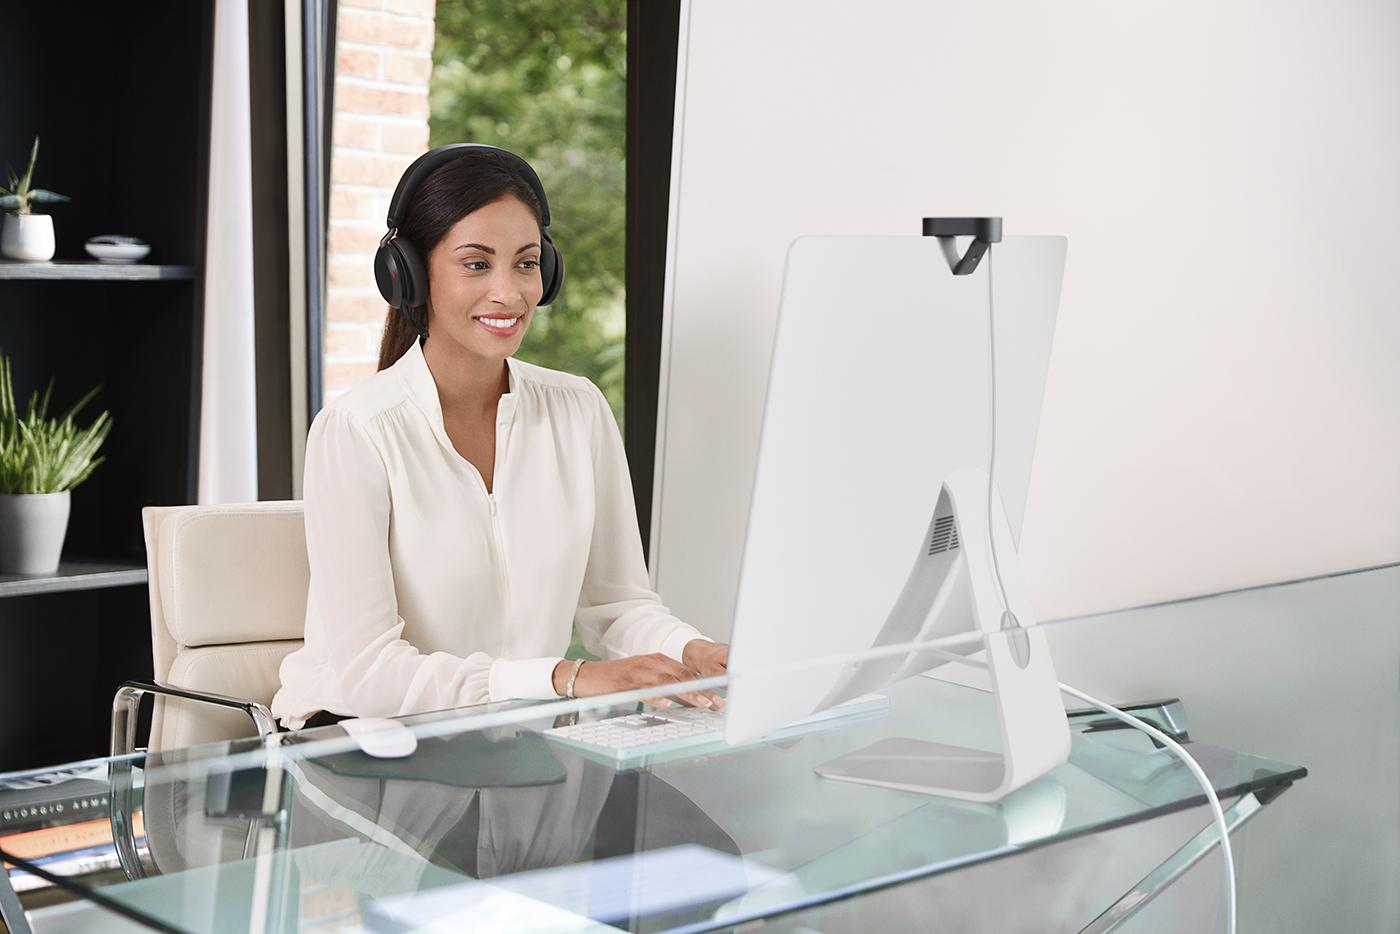 Remote work devices: A woman using Jabra headphones while on the computer.